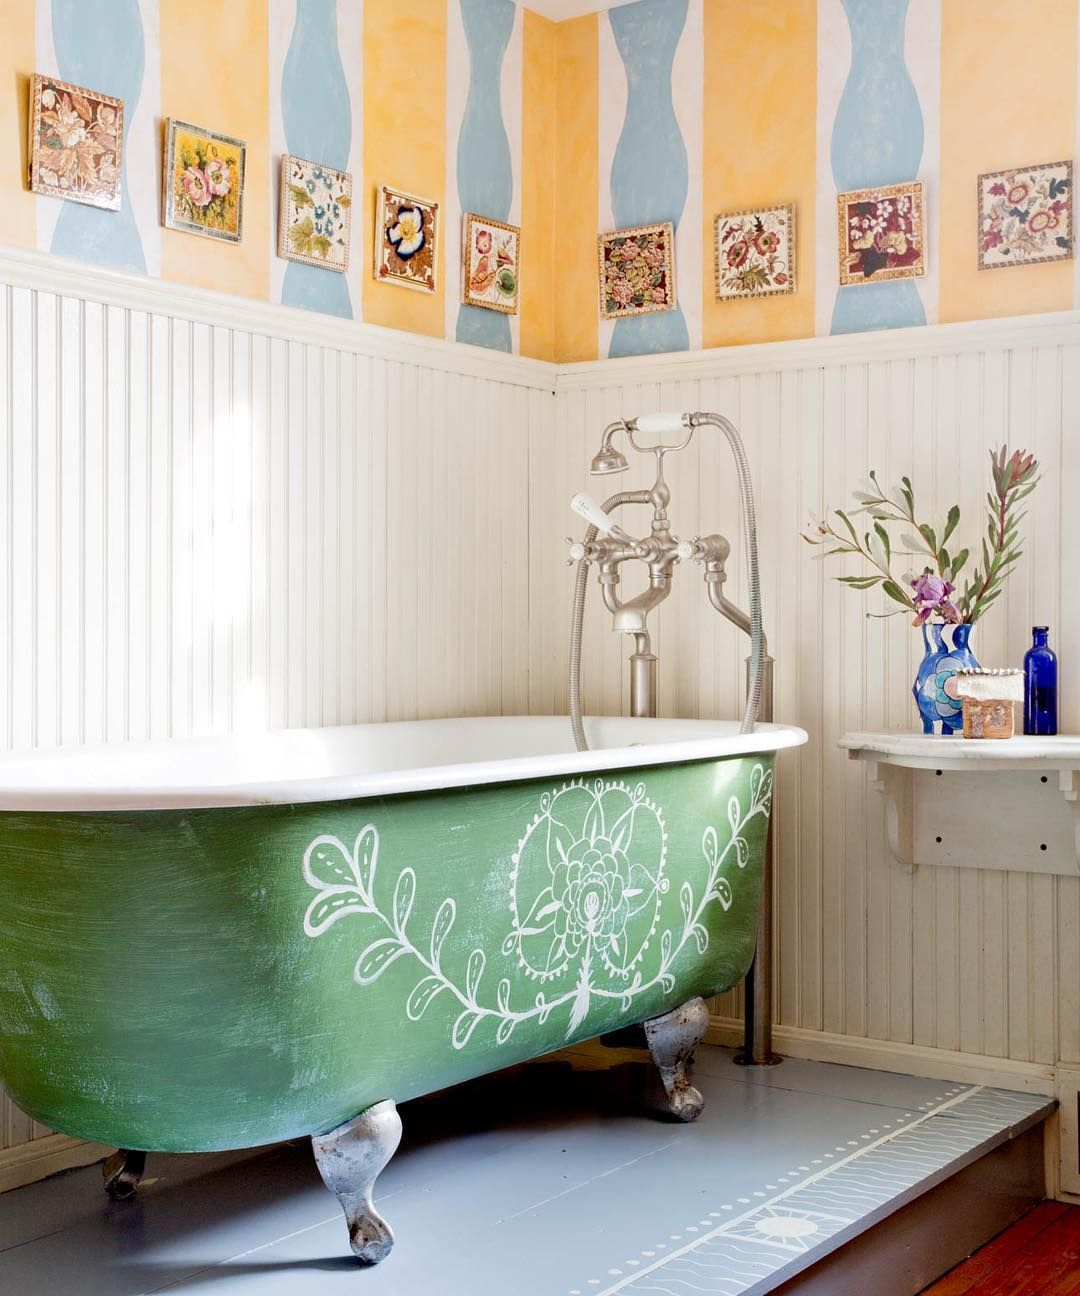 Whimsically Painted Claw Foot Tub Rikkisnyder Clawfoot Tub